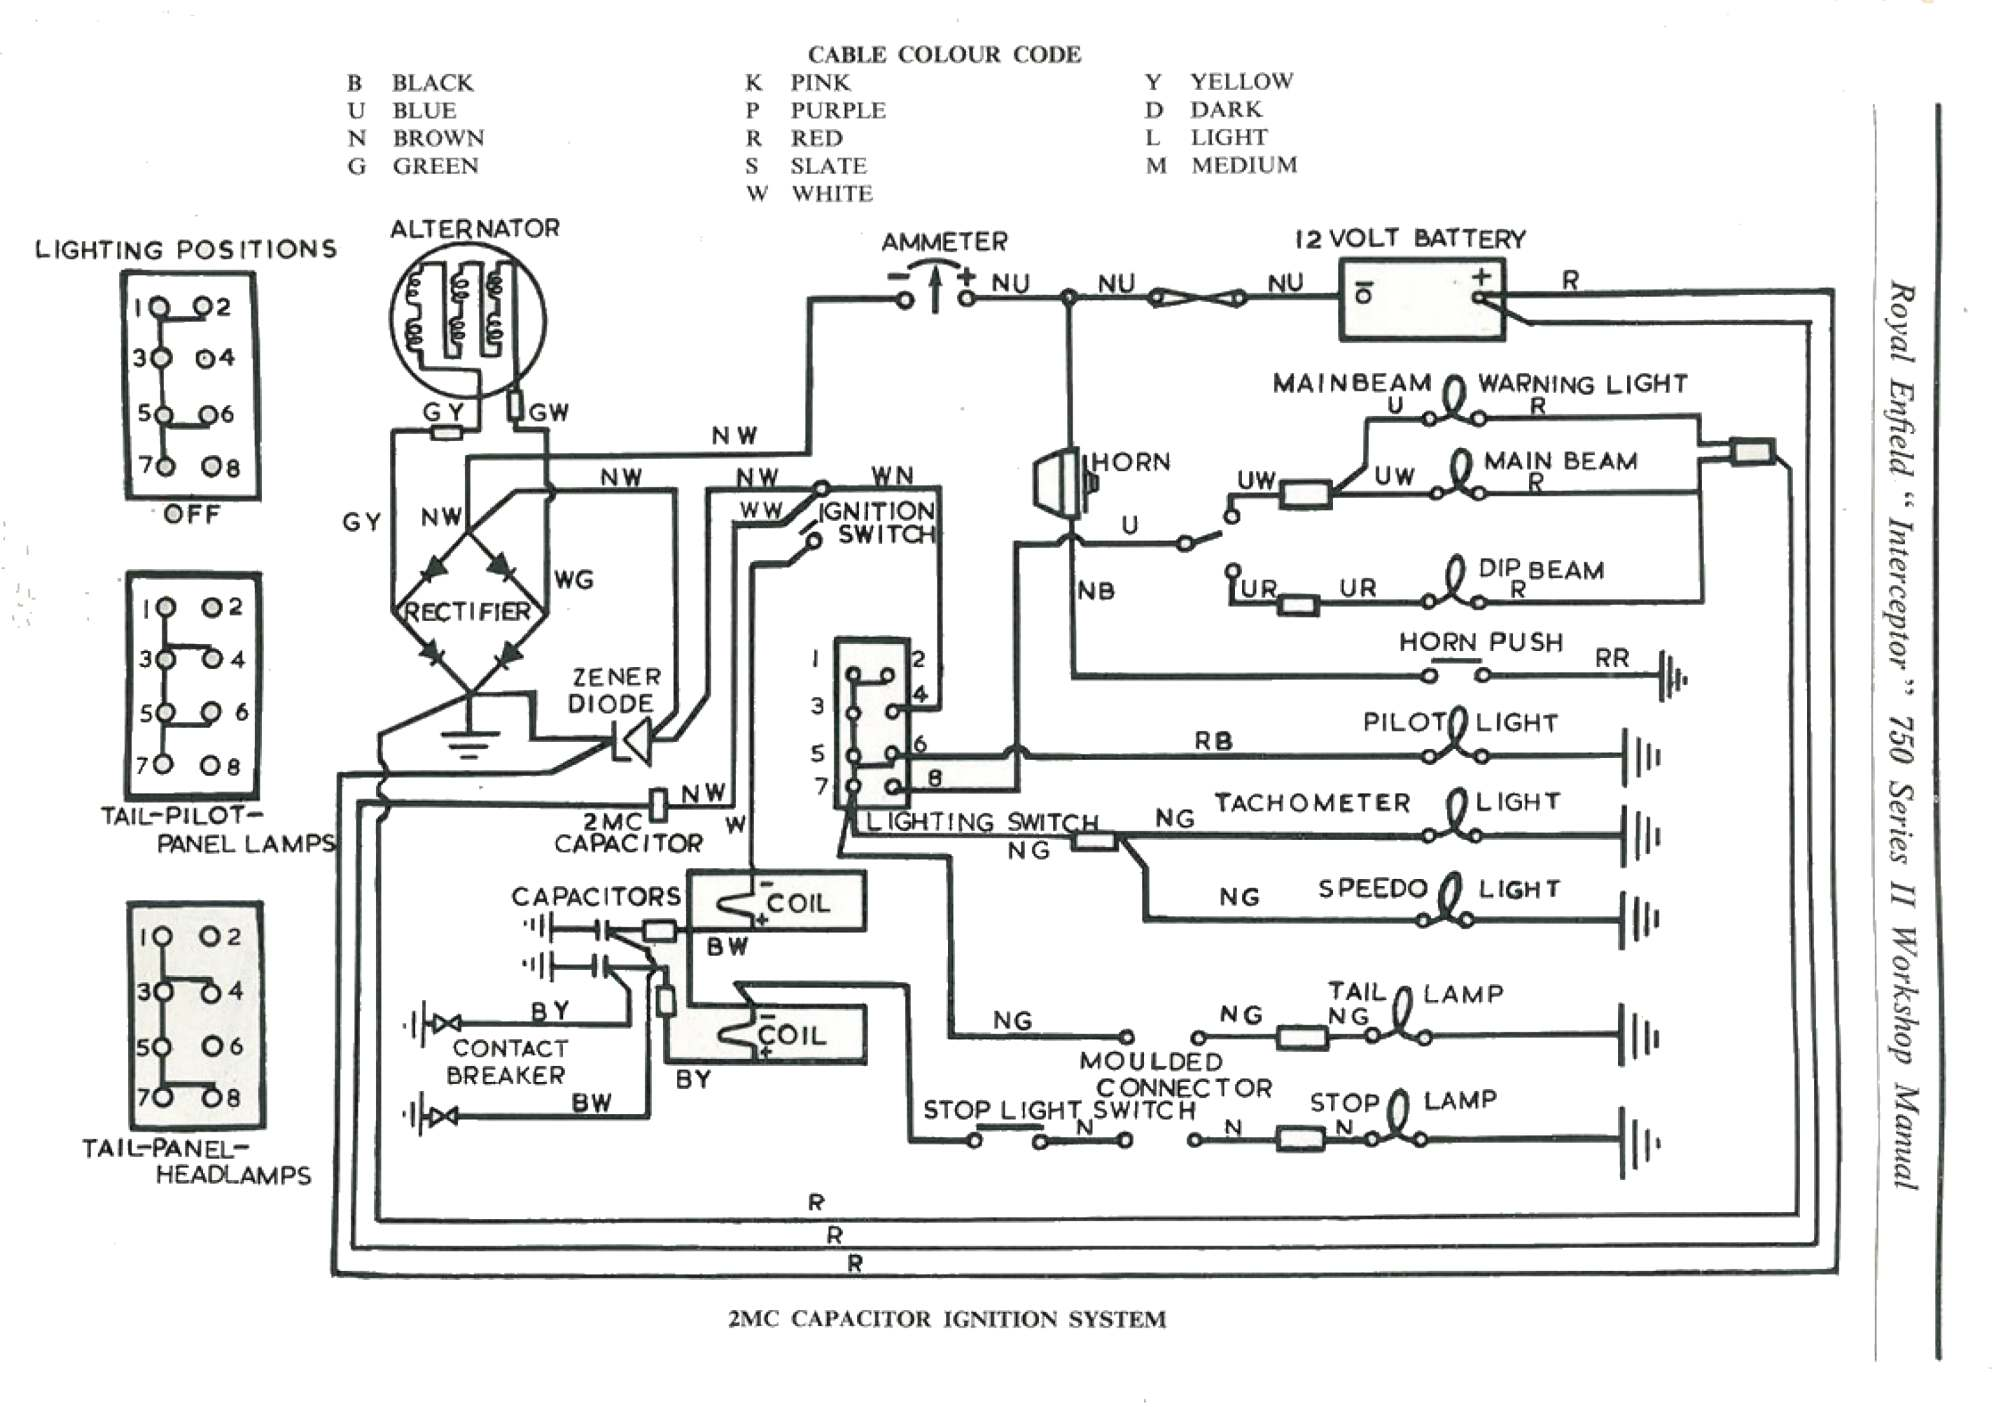 royal enfield electrical wiring diagram royal enfield colour wiring